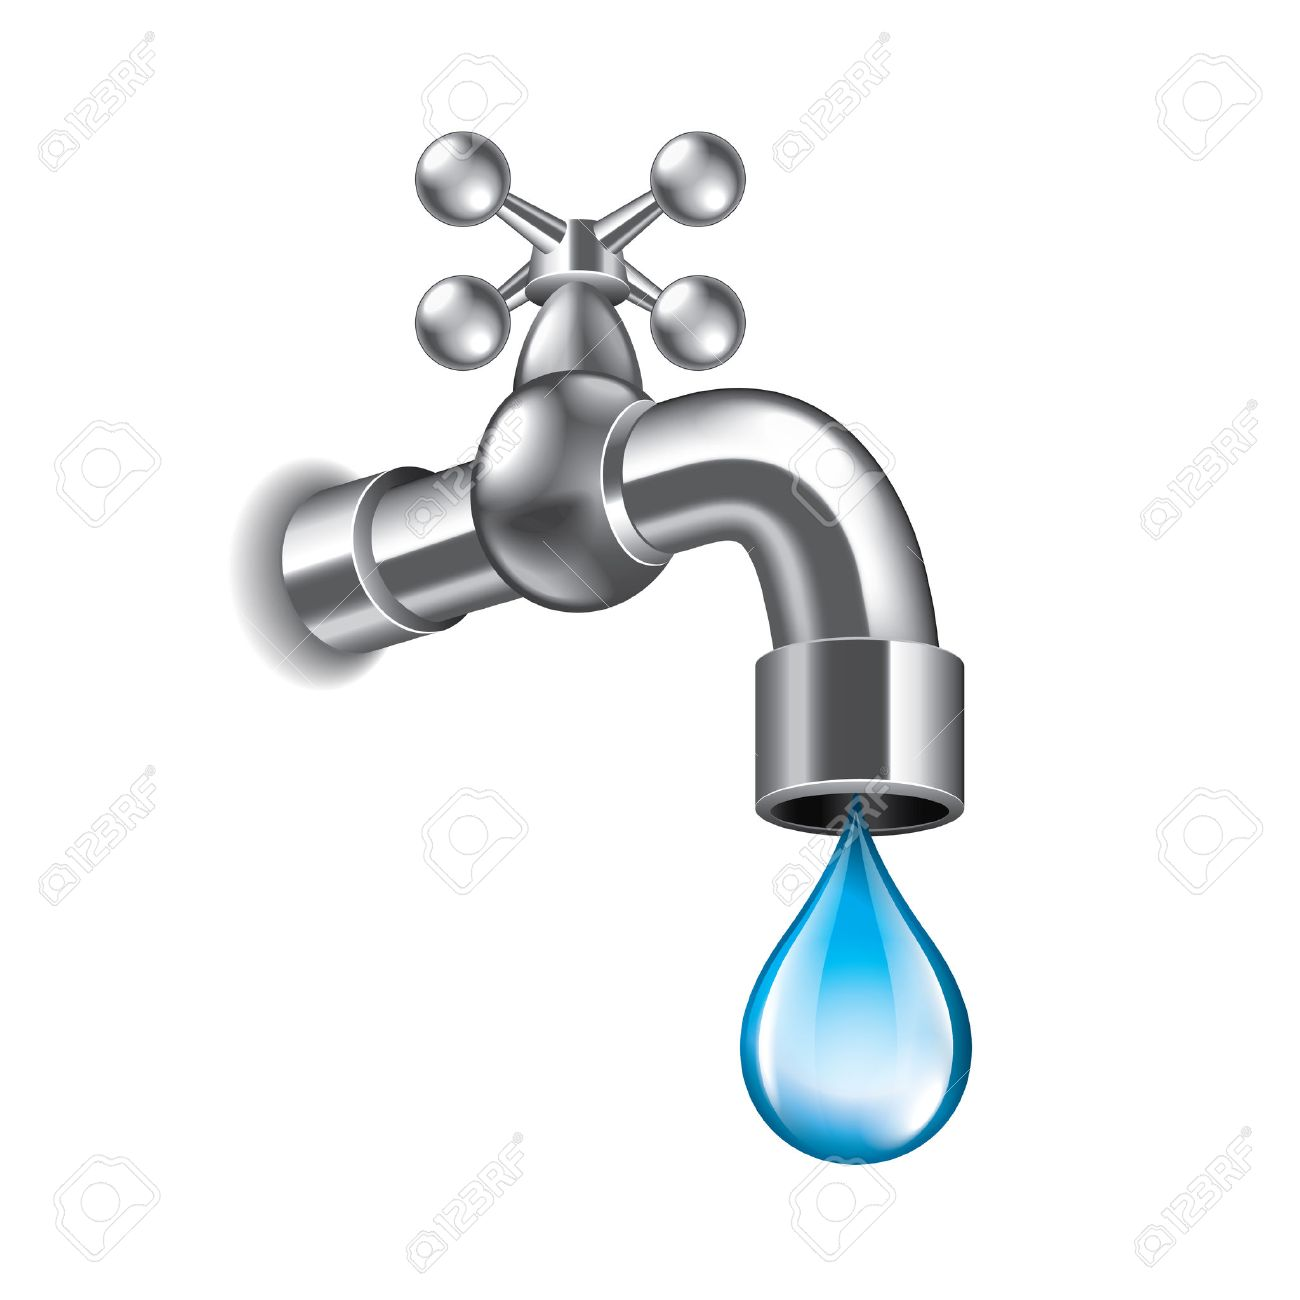 Water faucet isolated on white photo-realistic vector illustration - 36278600